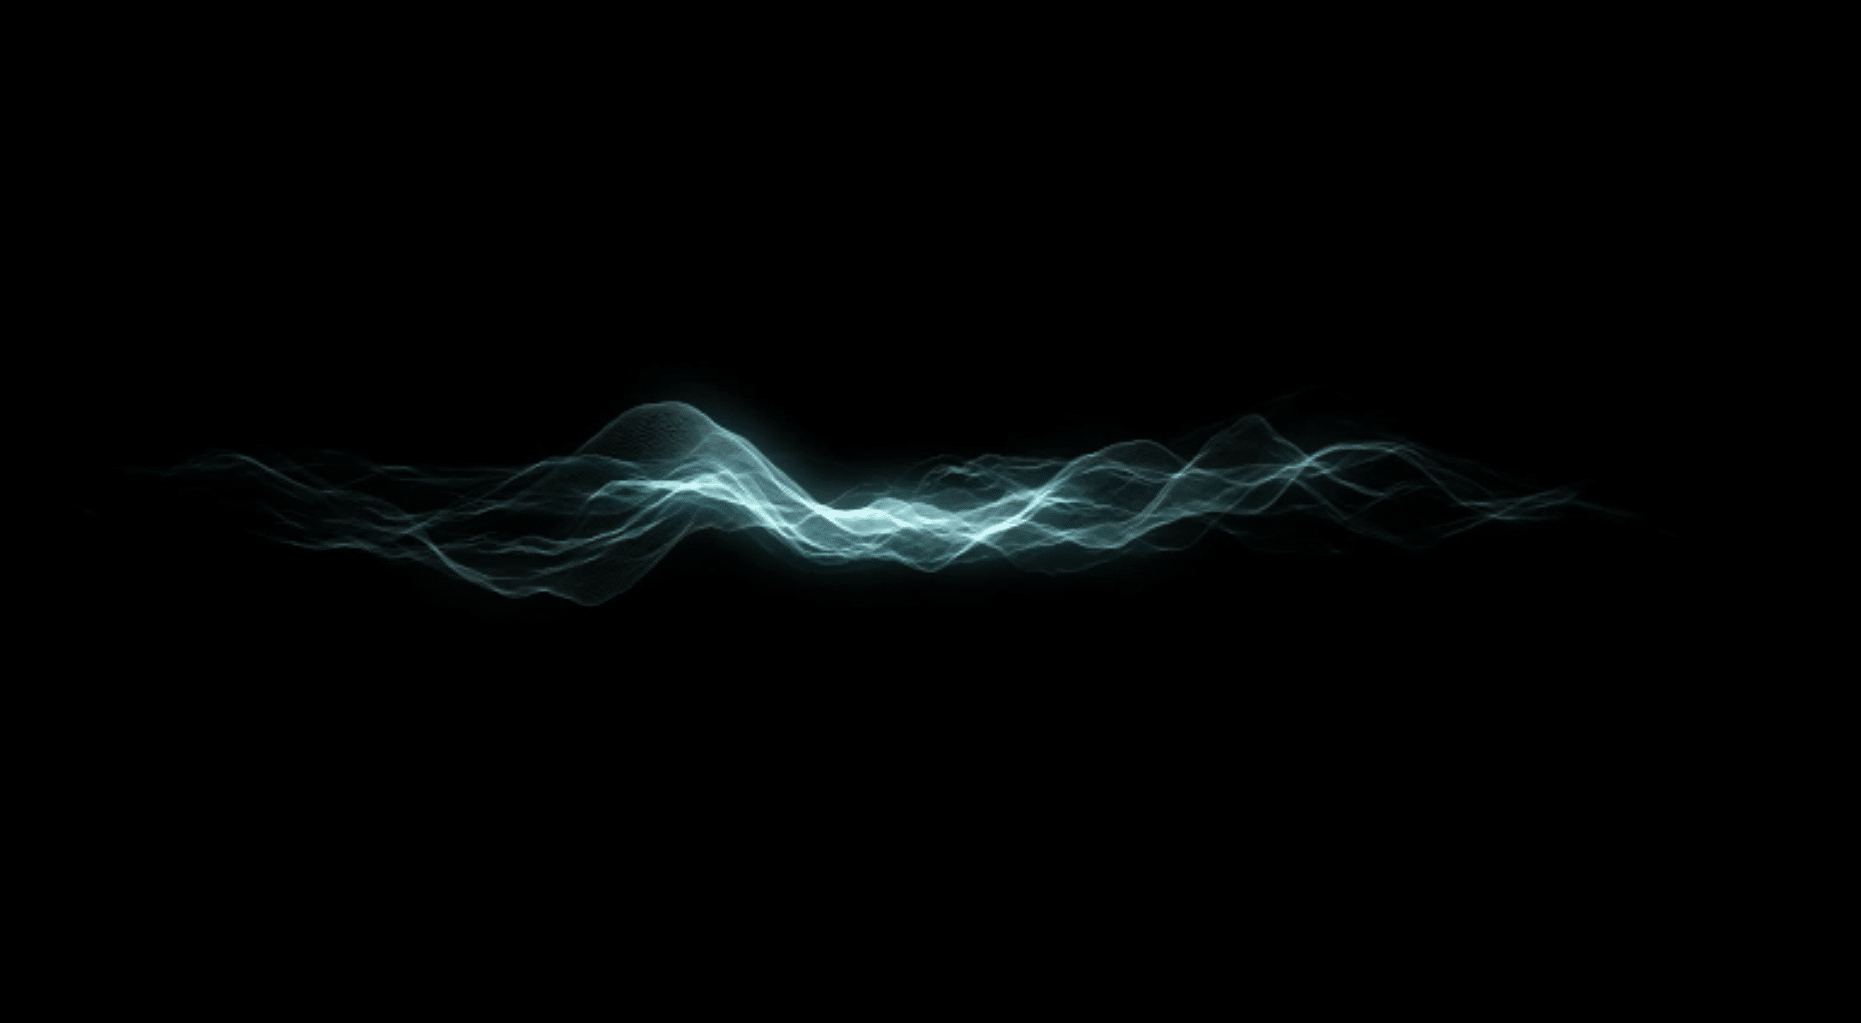 Image of a Sound wave. Starts a film about Dirac.